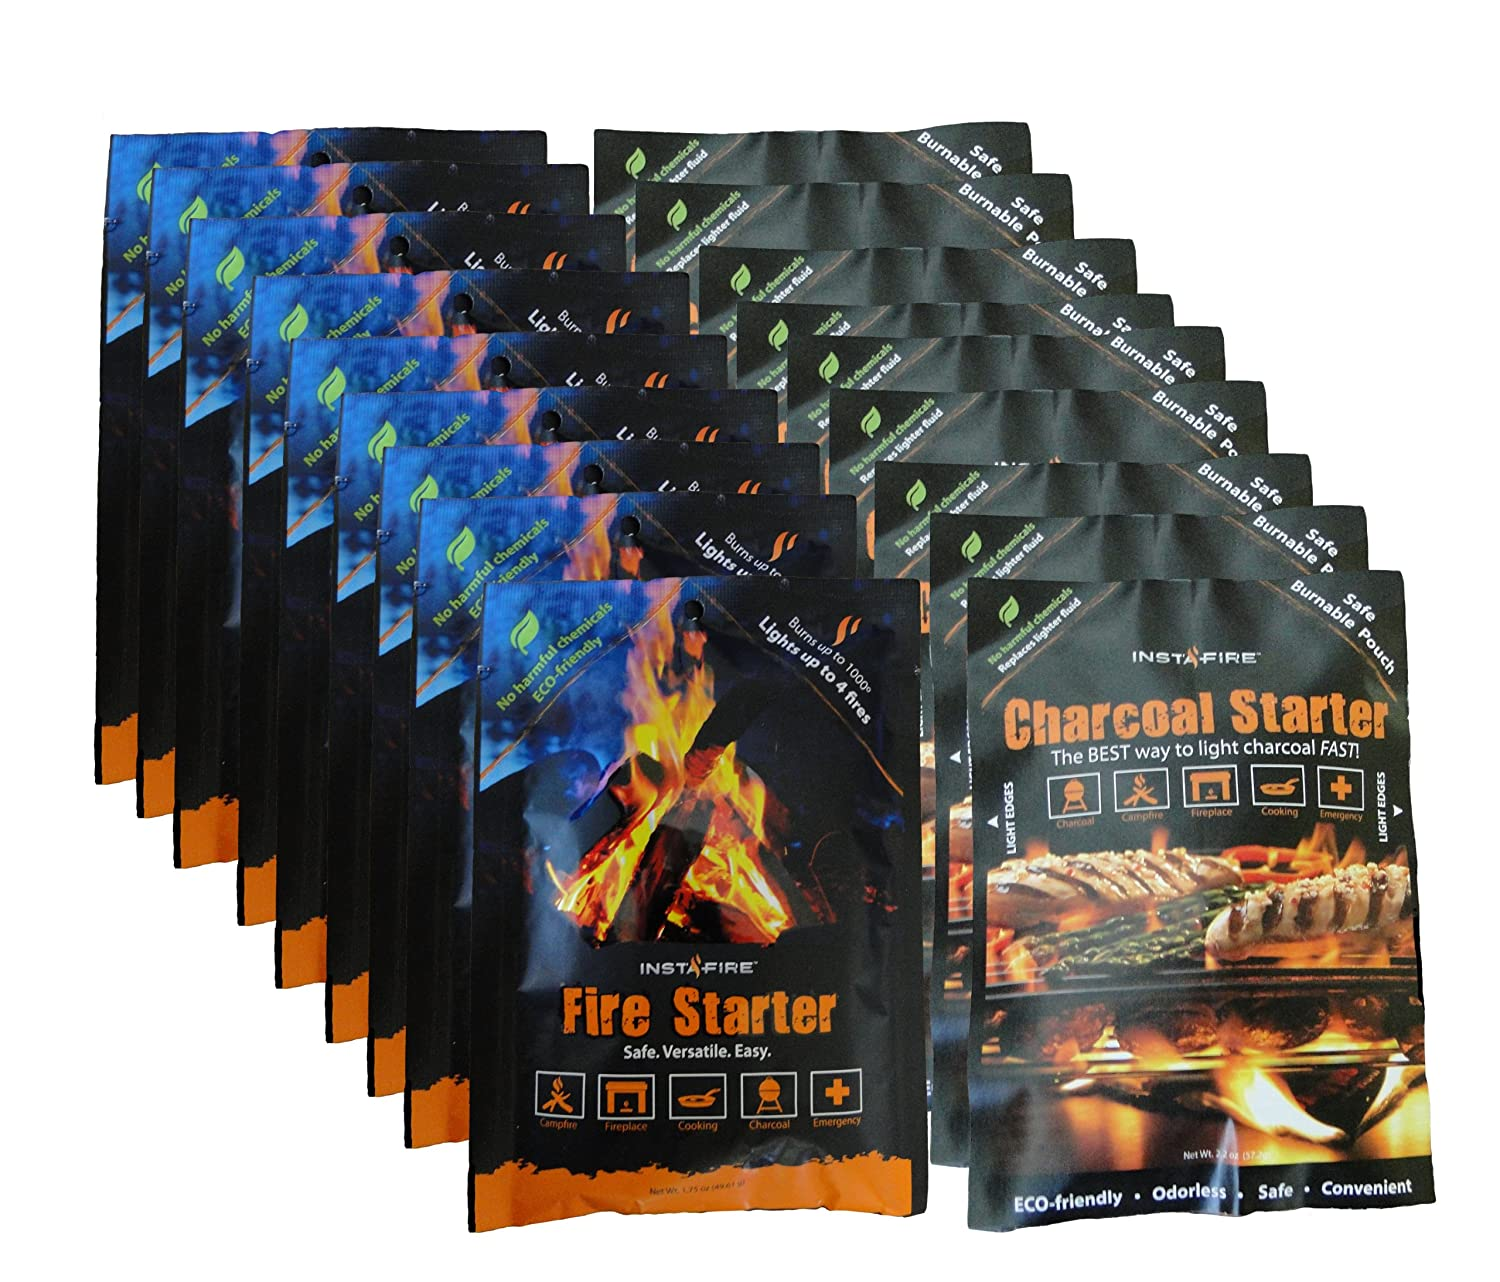 InstaFire Fire Starter (Mylar Packs) / Charcoal Briquette Starter (Burnable Packs) Set, 9 Packs of Each 791090535724 IF-C104GB1CSCB